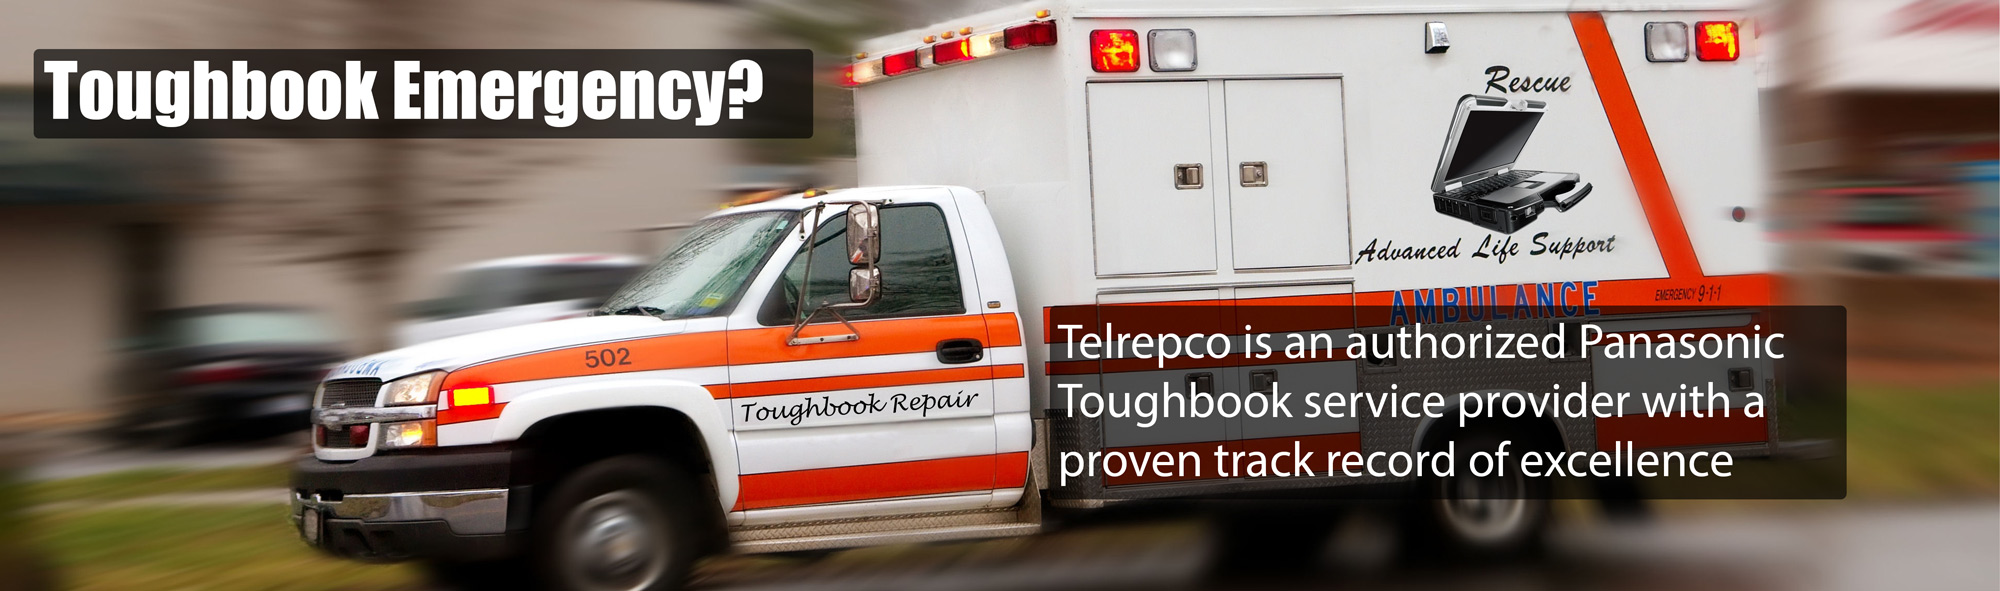 Telrepco is an authorized Panasonic Toughbook repair and service center with a proven track record of excellence